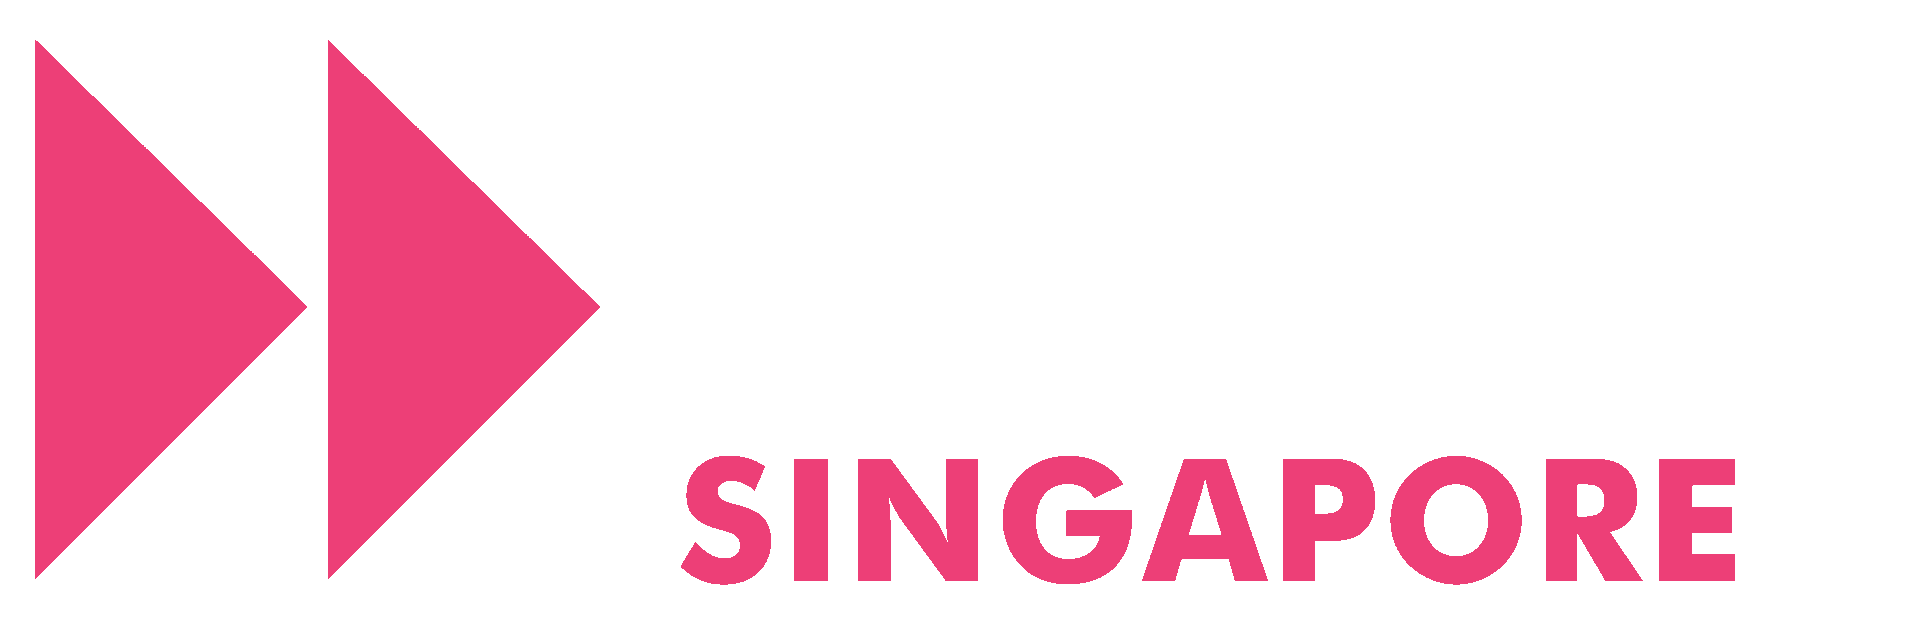 Awesome Foundation Singapore